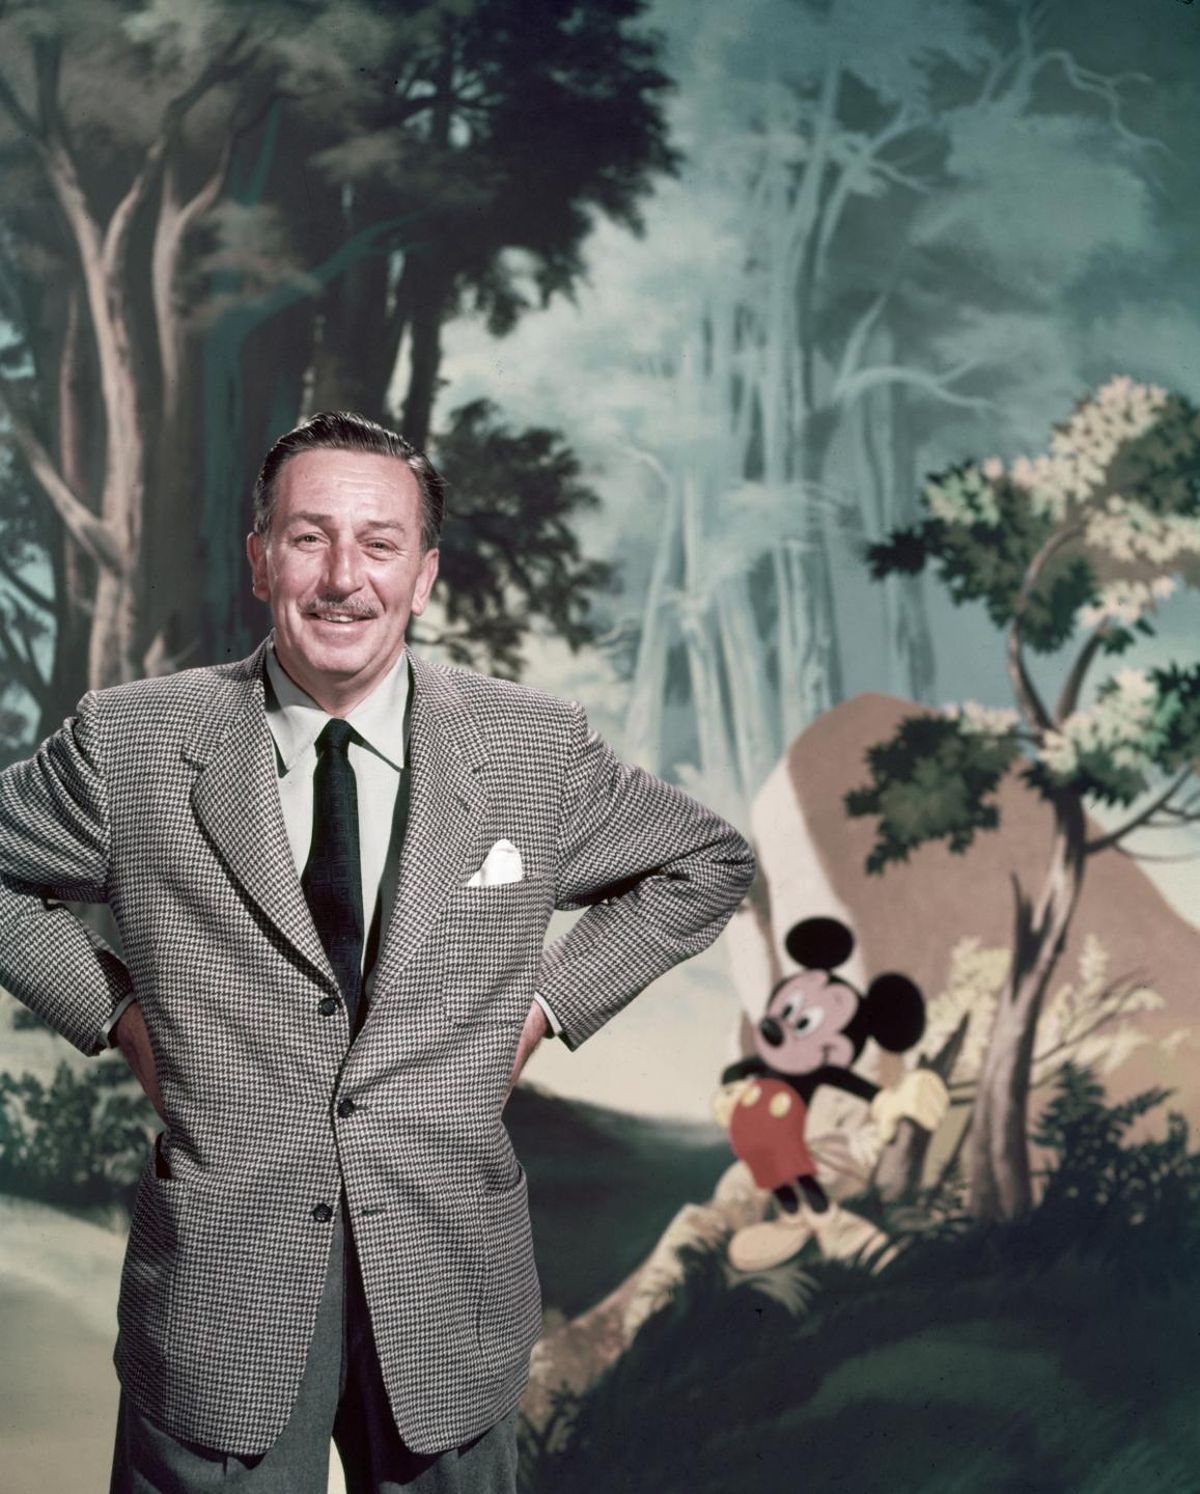 The Day Walt Disney An American Icon Who Gave Us Mickey